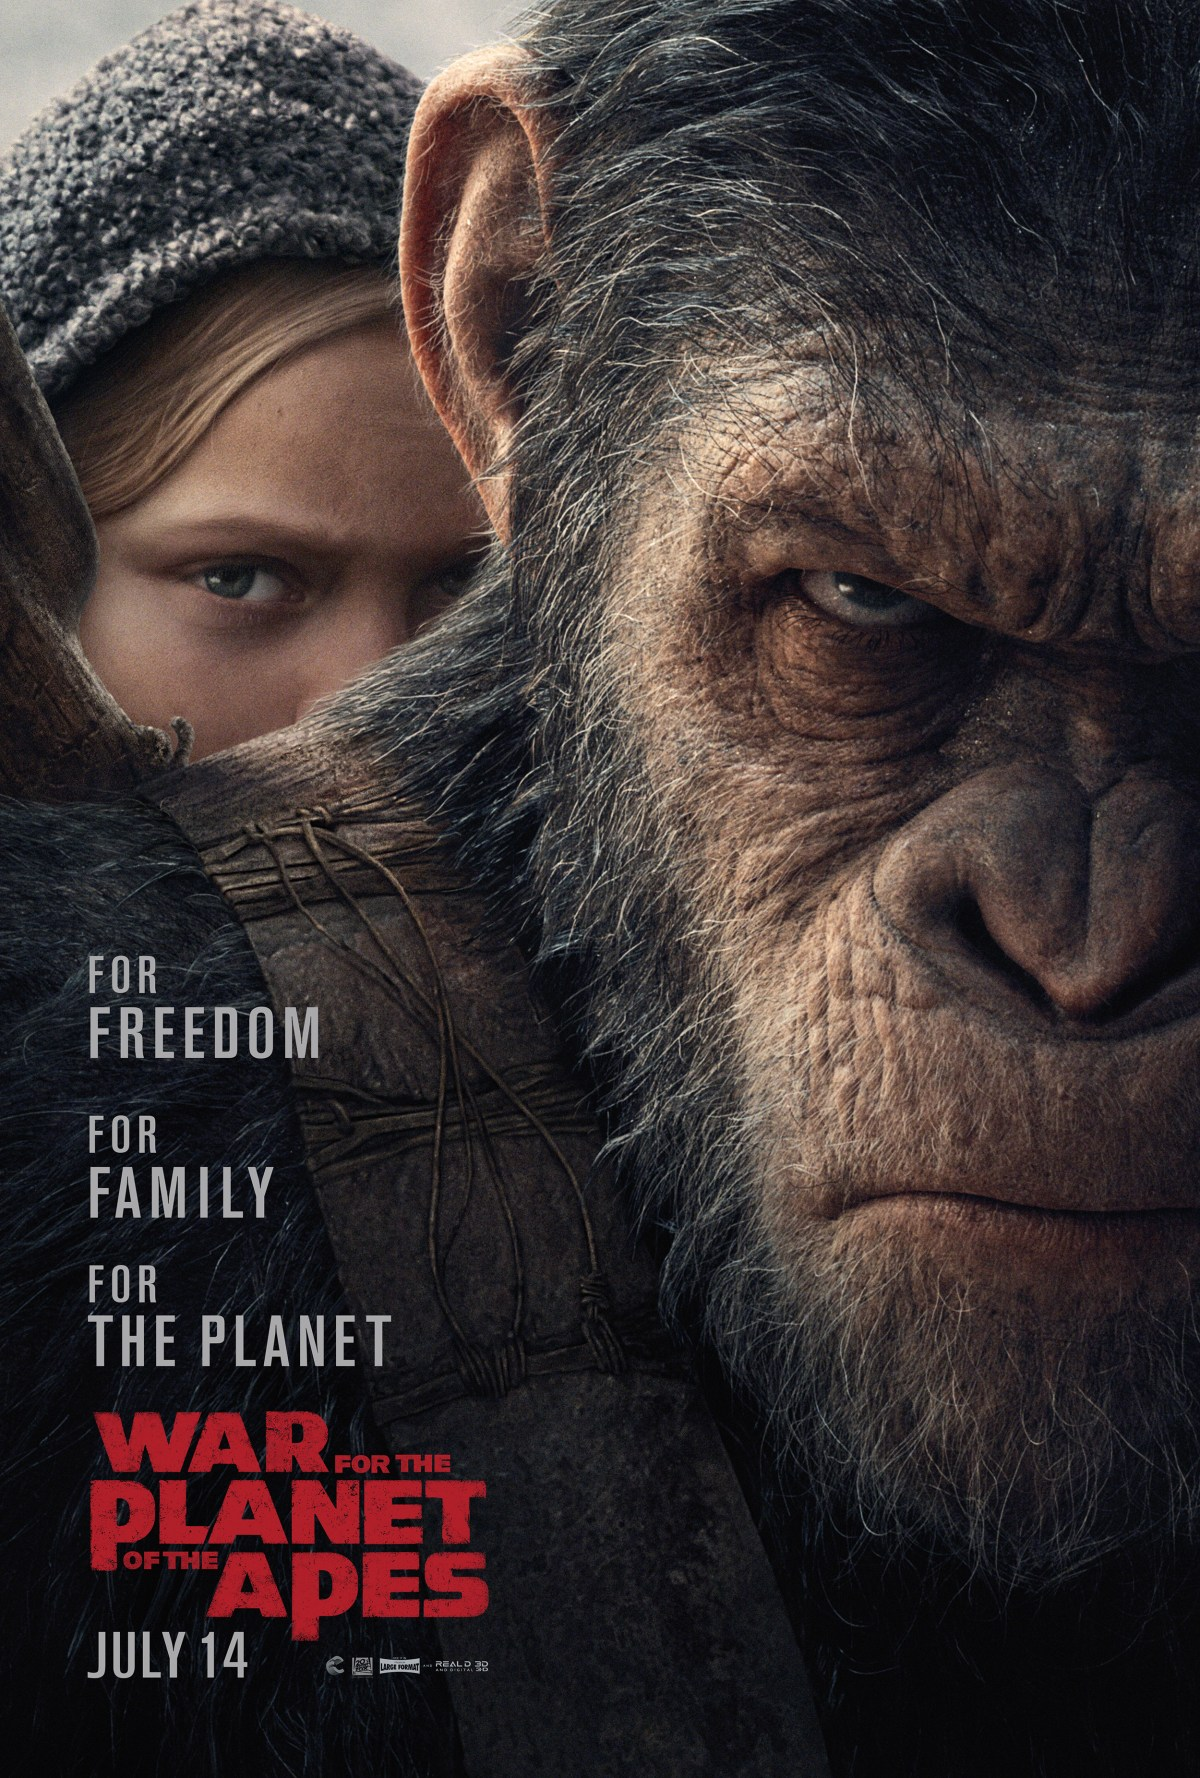 war-for-the-planet-of-the-apes-WPA_Caesar_Nova_1s_w5.2_AKZ_small_rgb